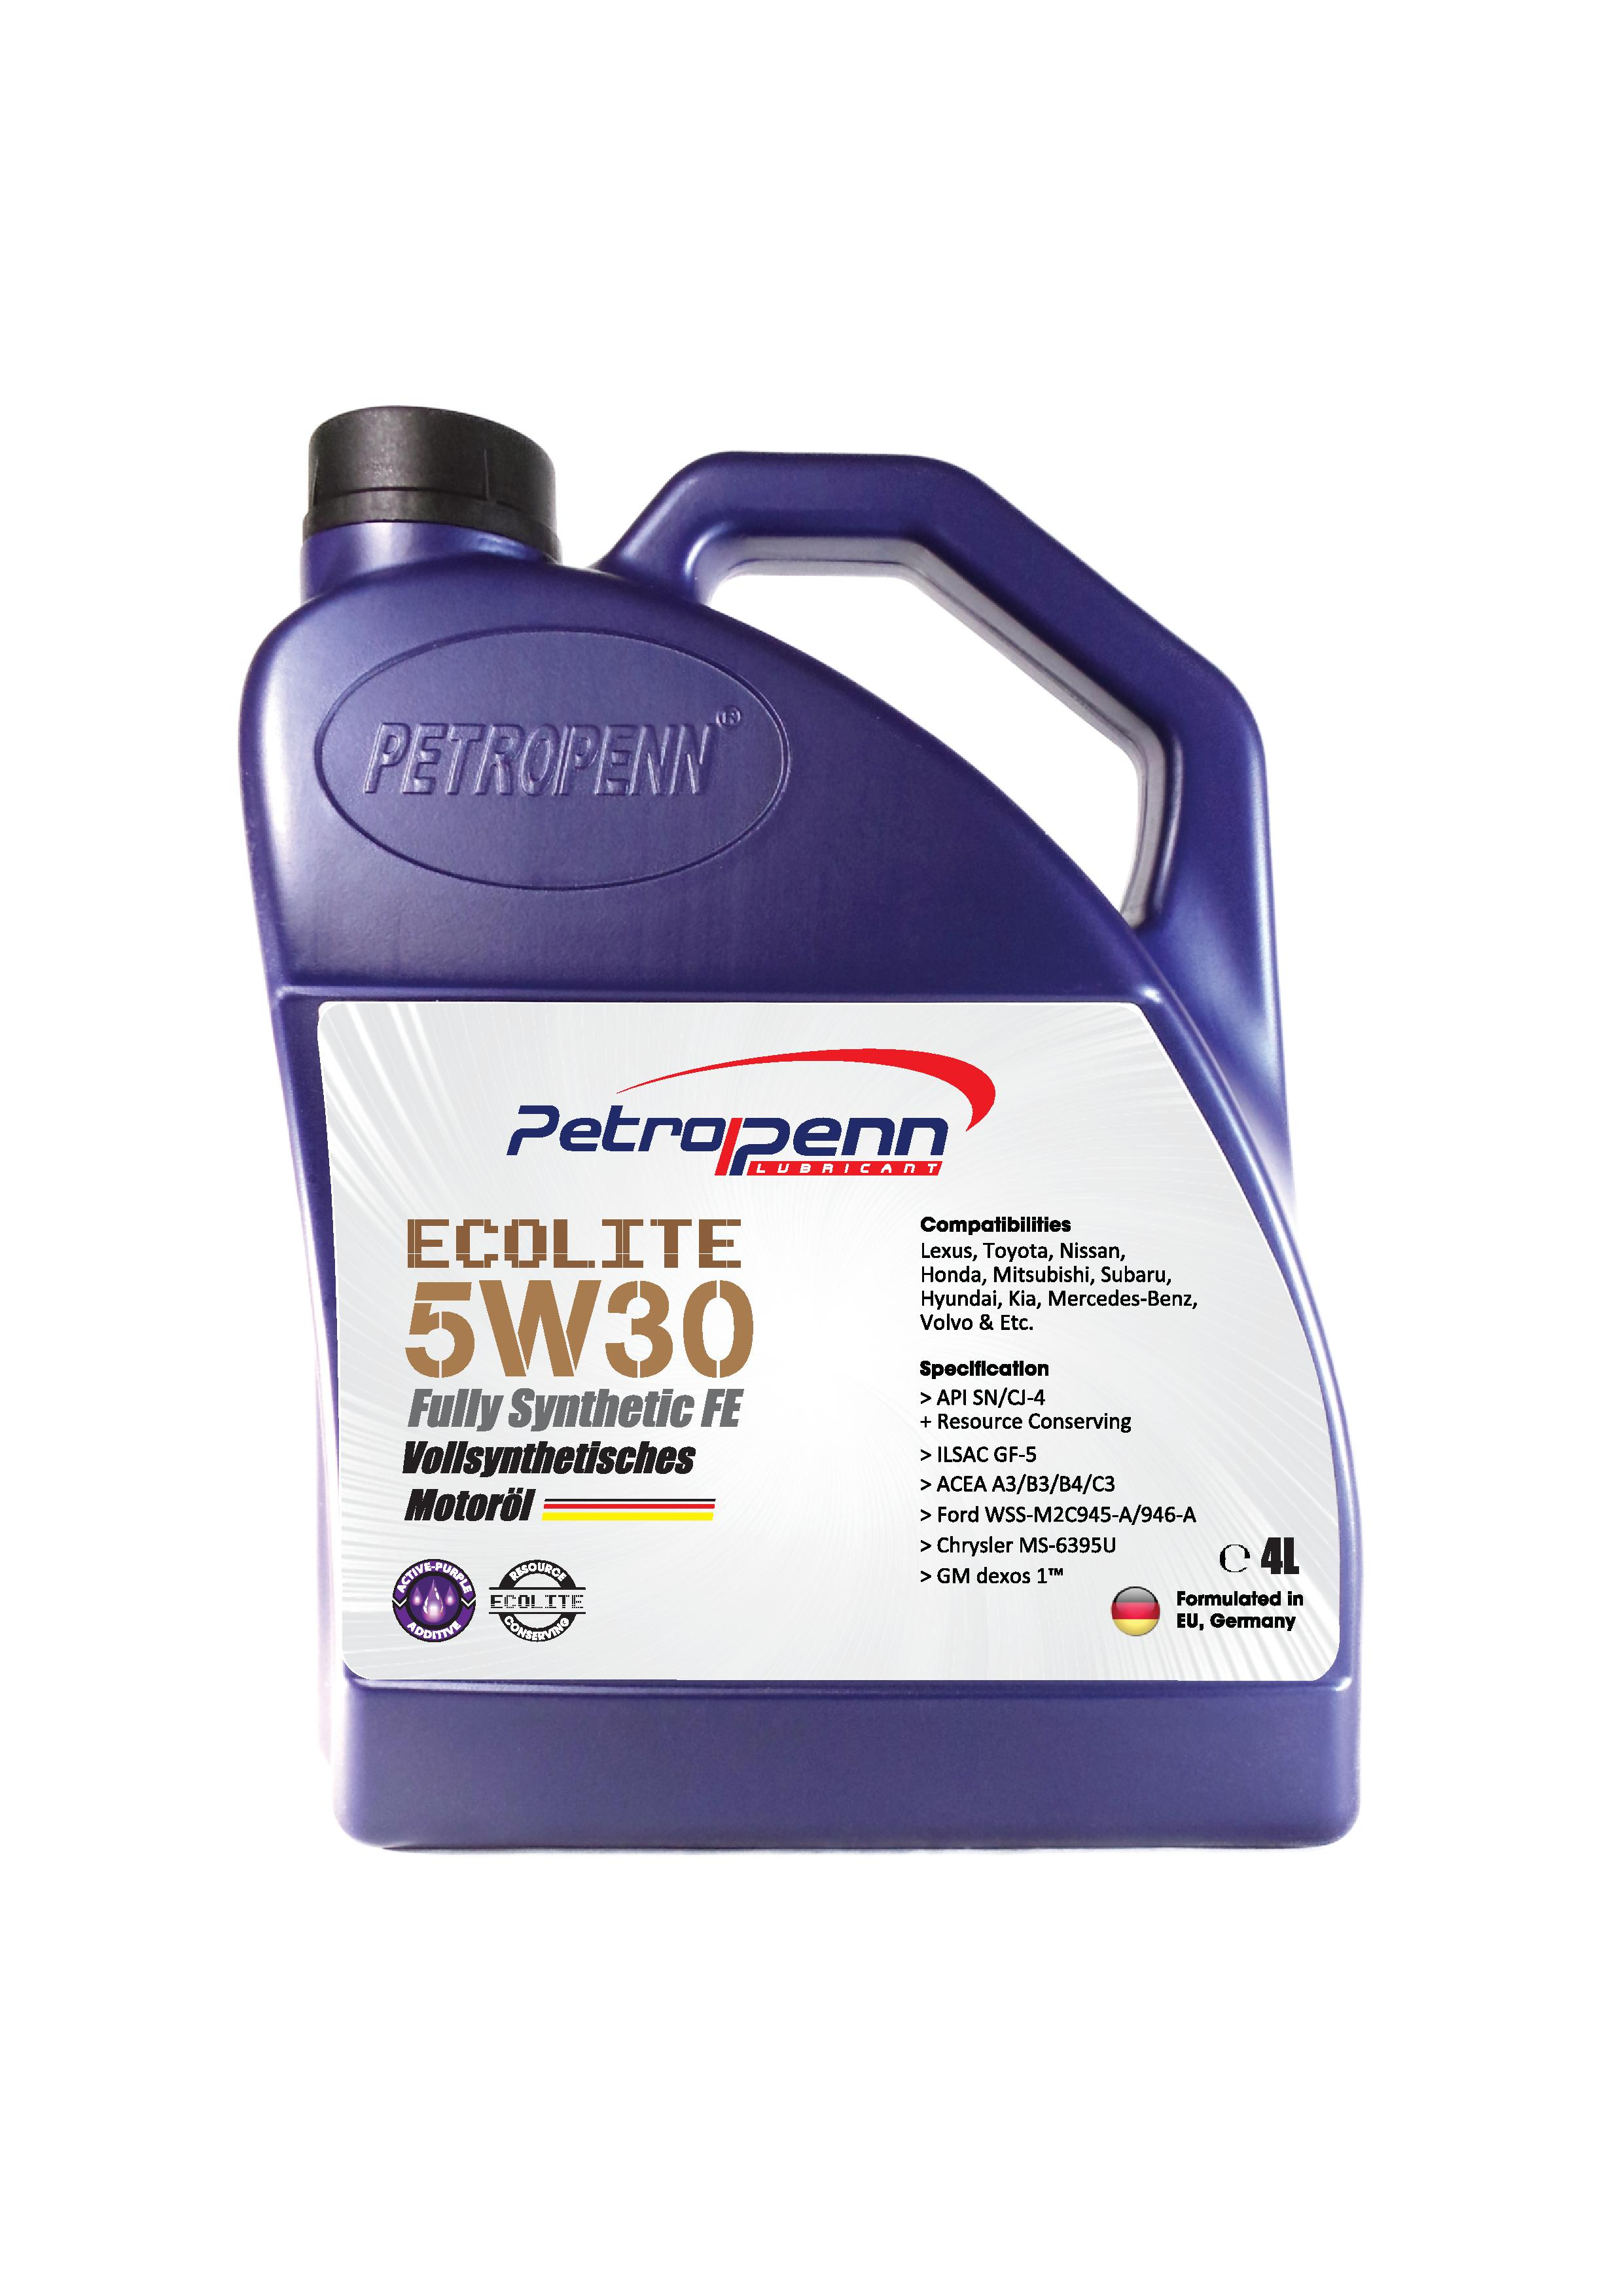 01 Petrolpenn Ecolite 5w30 4litres Fully Synthetic Mercedes Benz Lubricants